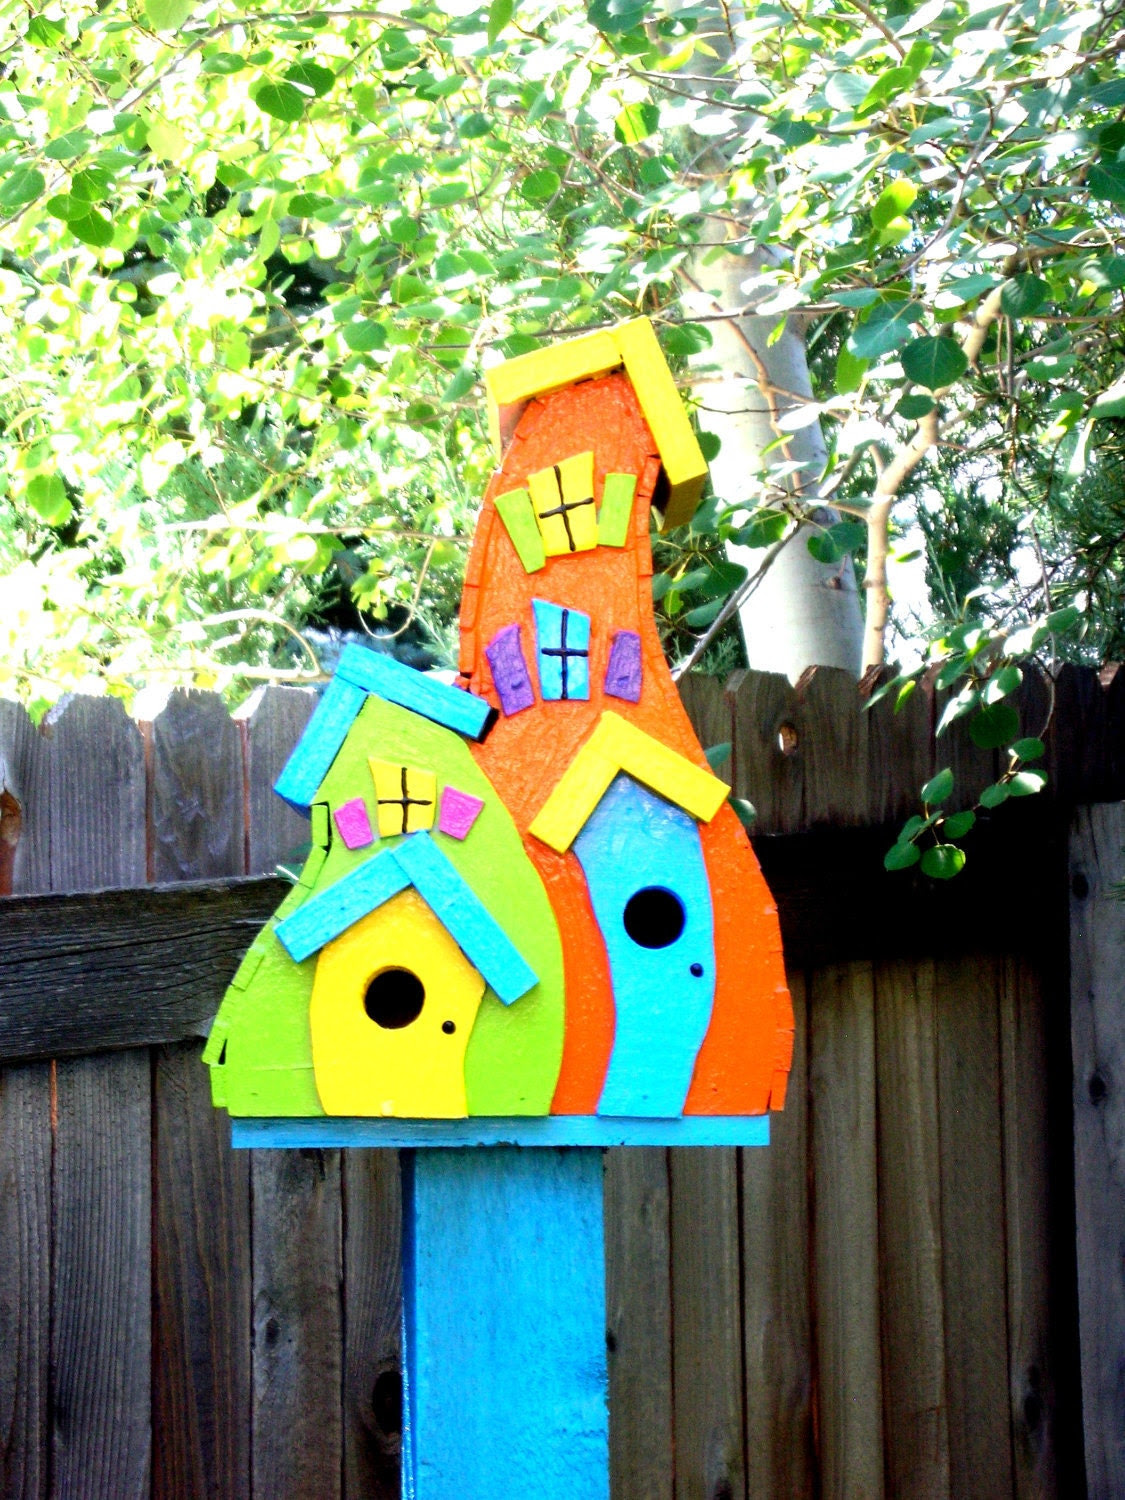 Homemade birdhouse bright colors